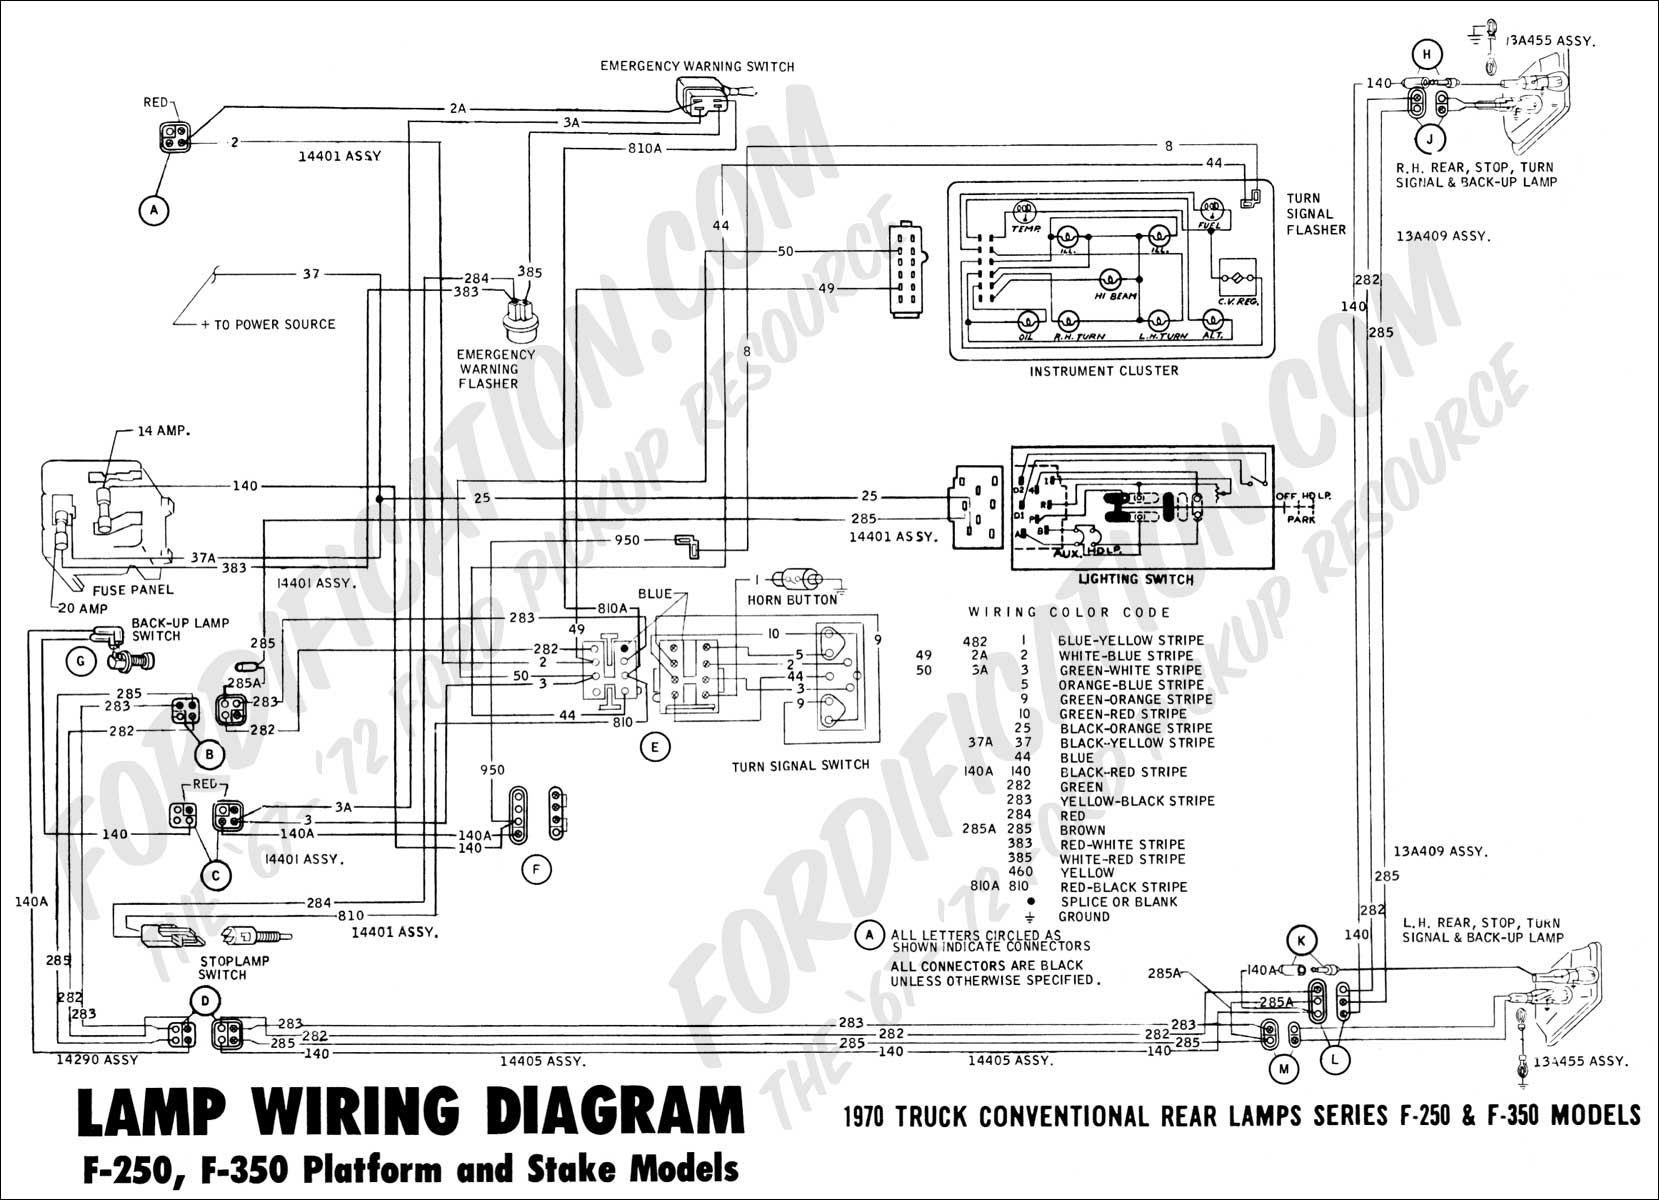 F250 Wiring Diagram : Ford f wiring diagram get free image about